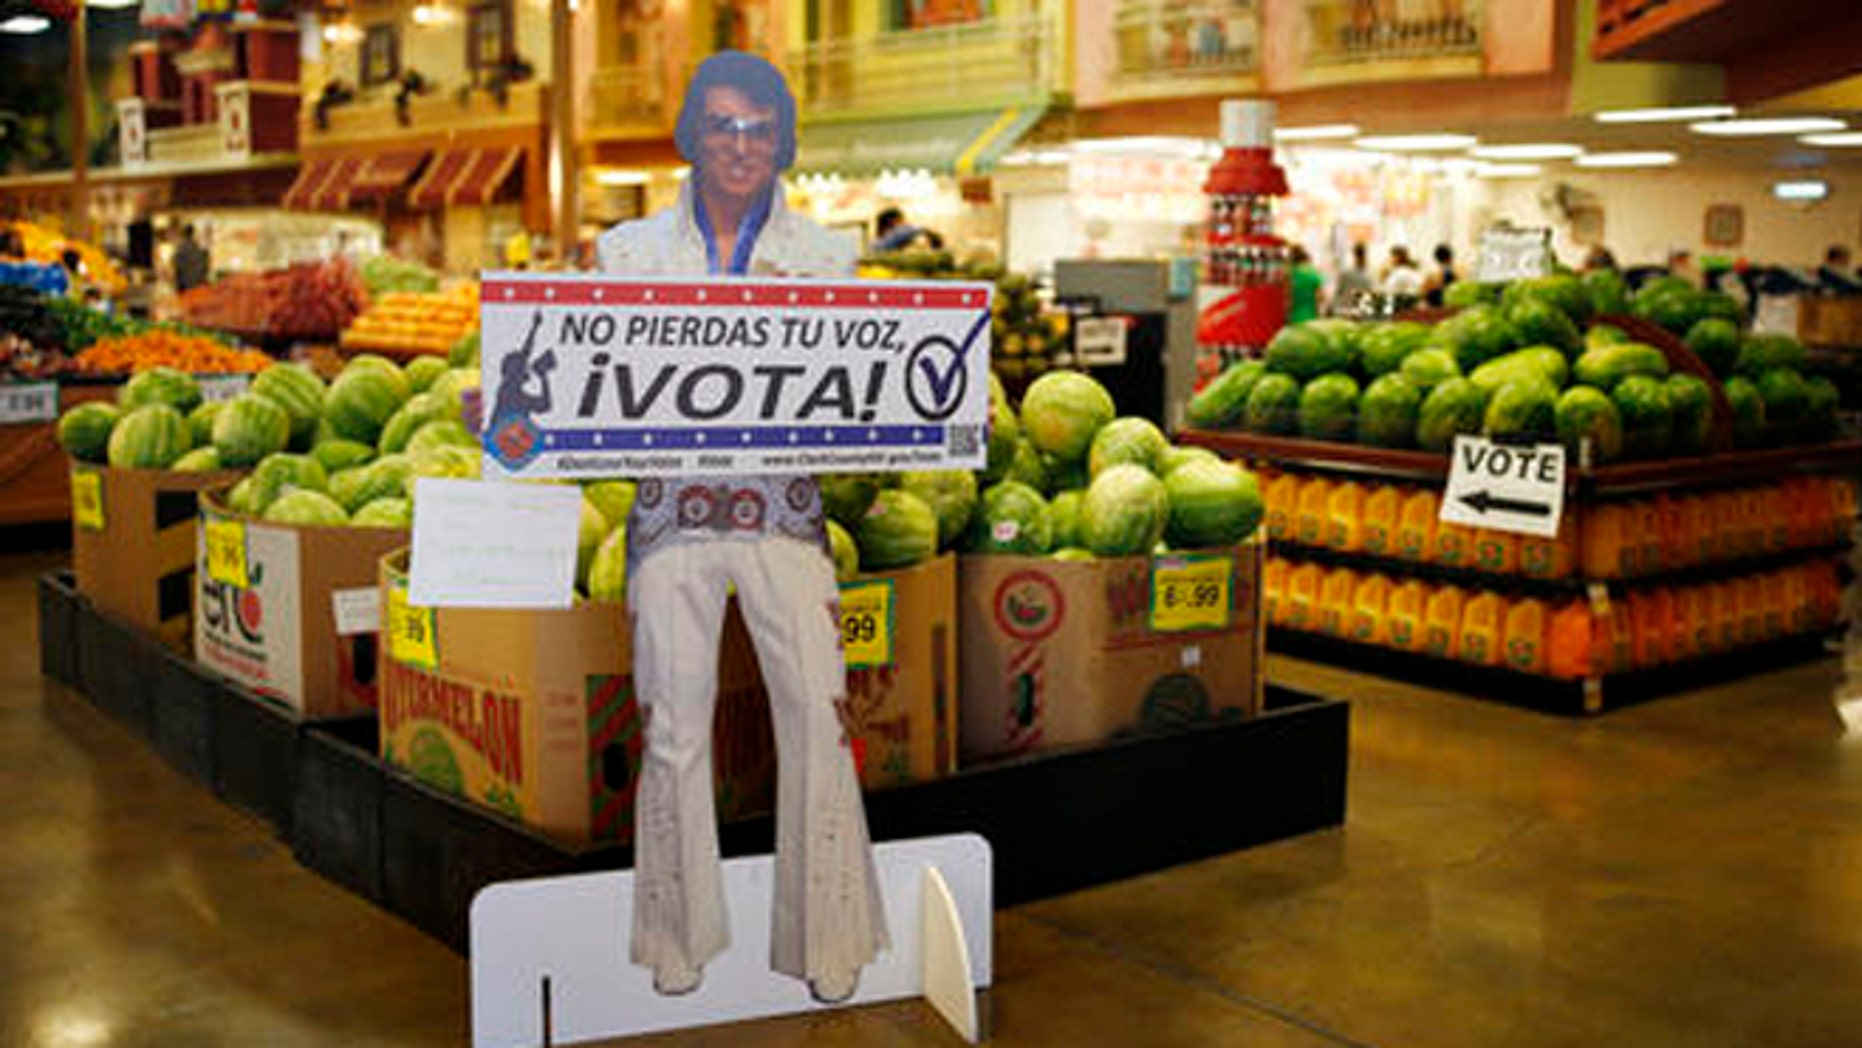 """A sign in Spanish which translates, """"Don't Lose Your Voice, Vote!"""" is displayed near a polling place in a Cardenas supermarket in Las Vegas on Friday, June 10, 2016. In the battleground state of Nevada, some 17 percent of eligible voters are Hispanics. Here, Latinos have clearly demonstrated the power they wield when they either turn out or stay home. In 2008 and 2012 they helped President Barack Obama; they were critical in re-electing Sen. Harry Reid in 2010. In the 2014 midterms, though, Hispanic turnout plummeted, and Republicans swept every statewide office and won control of both houses of the Legislature for the first time since 1929. (AP Photo/John Locher)"""